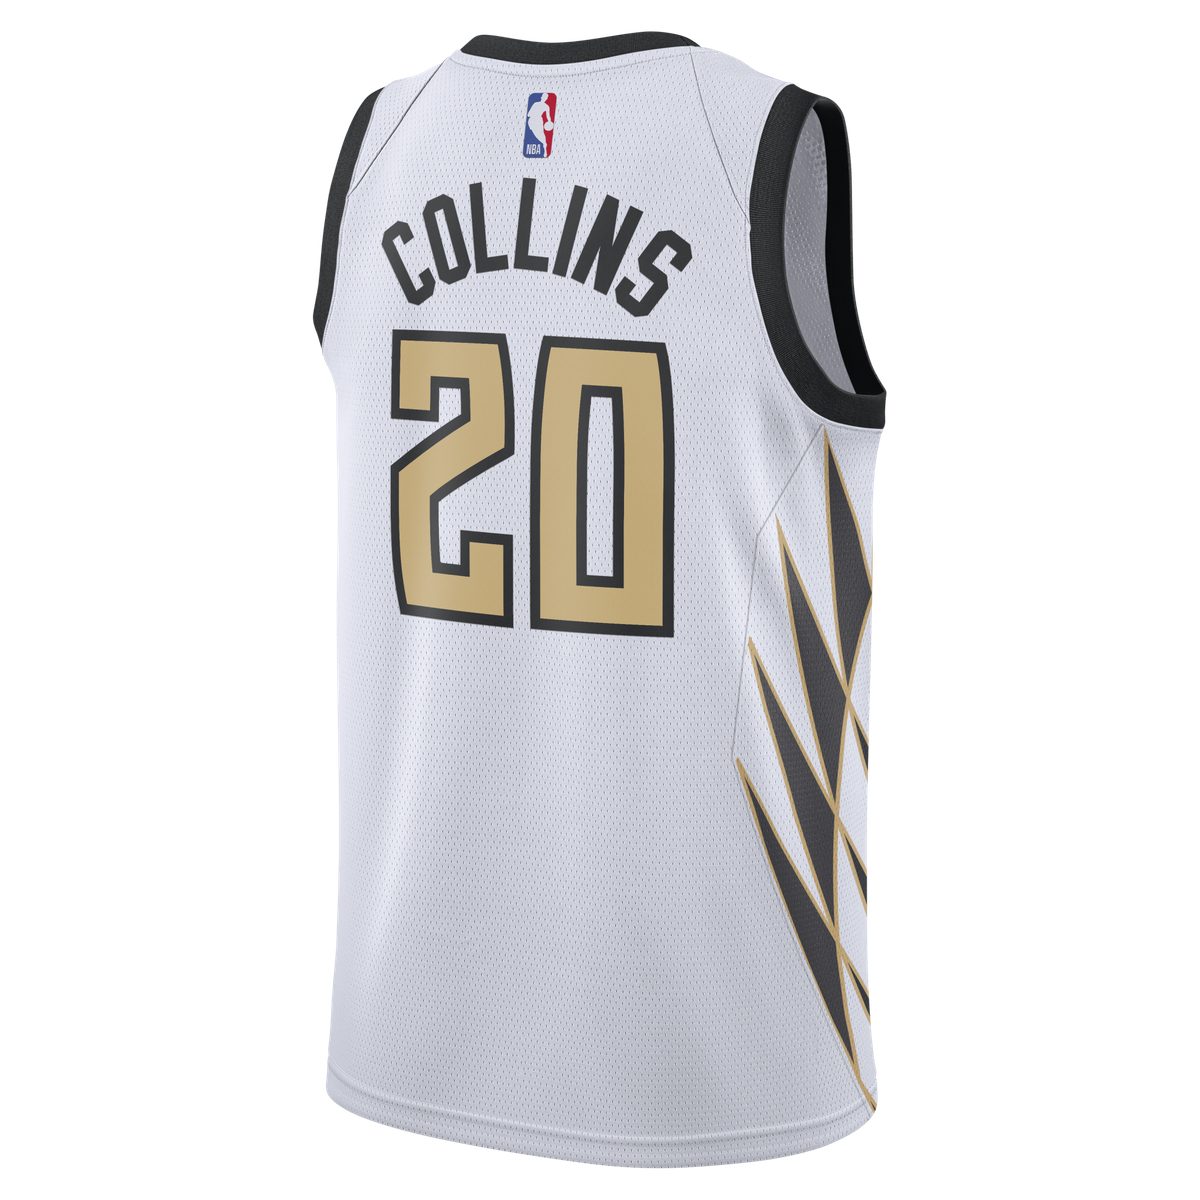 a8e99734fbb John Collins Nike Swingman Jersey - City Edition for  109.99 Fanatics